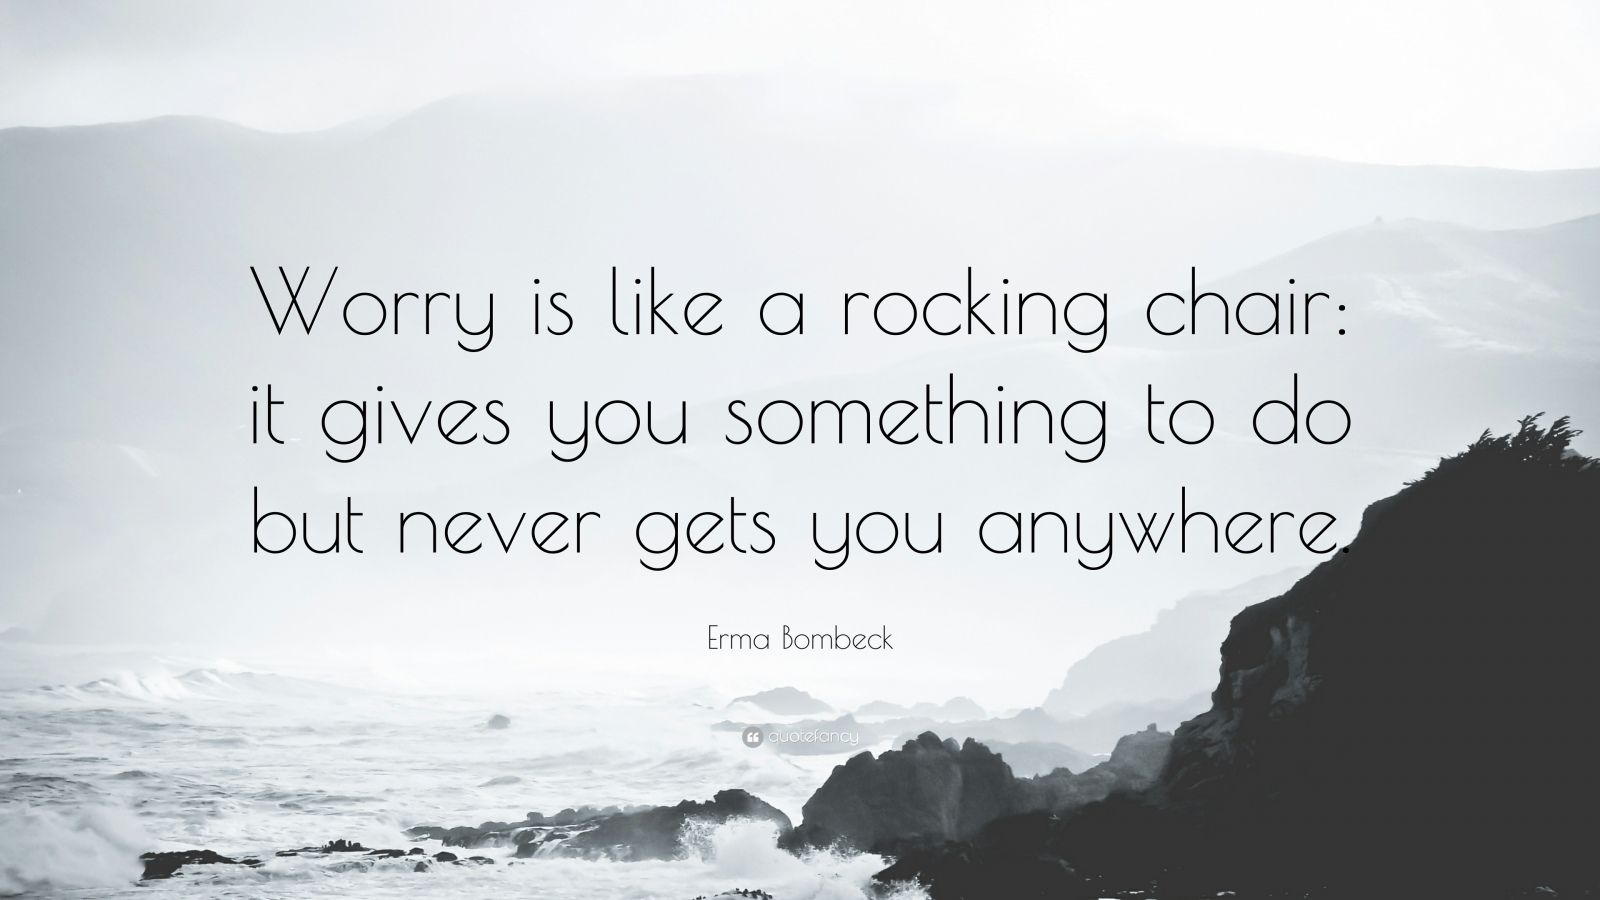 """Erma Bombeck Quote: """"Worry is like a rocking chair: it gives you something to do but never gets you anywhere."""""""